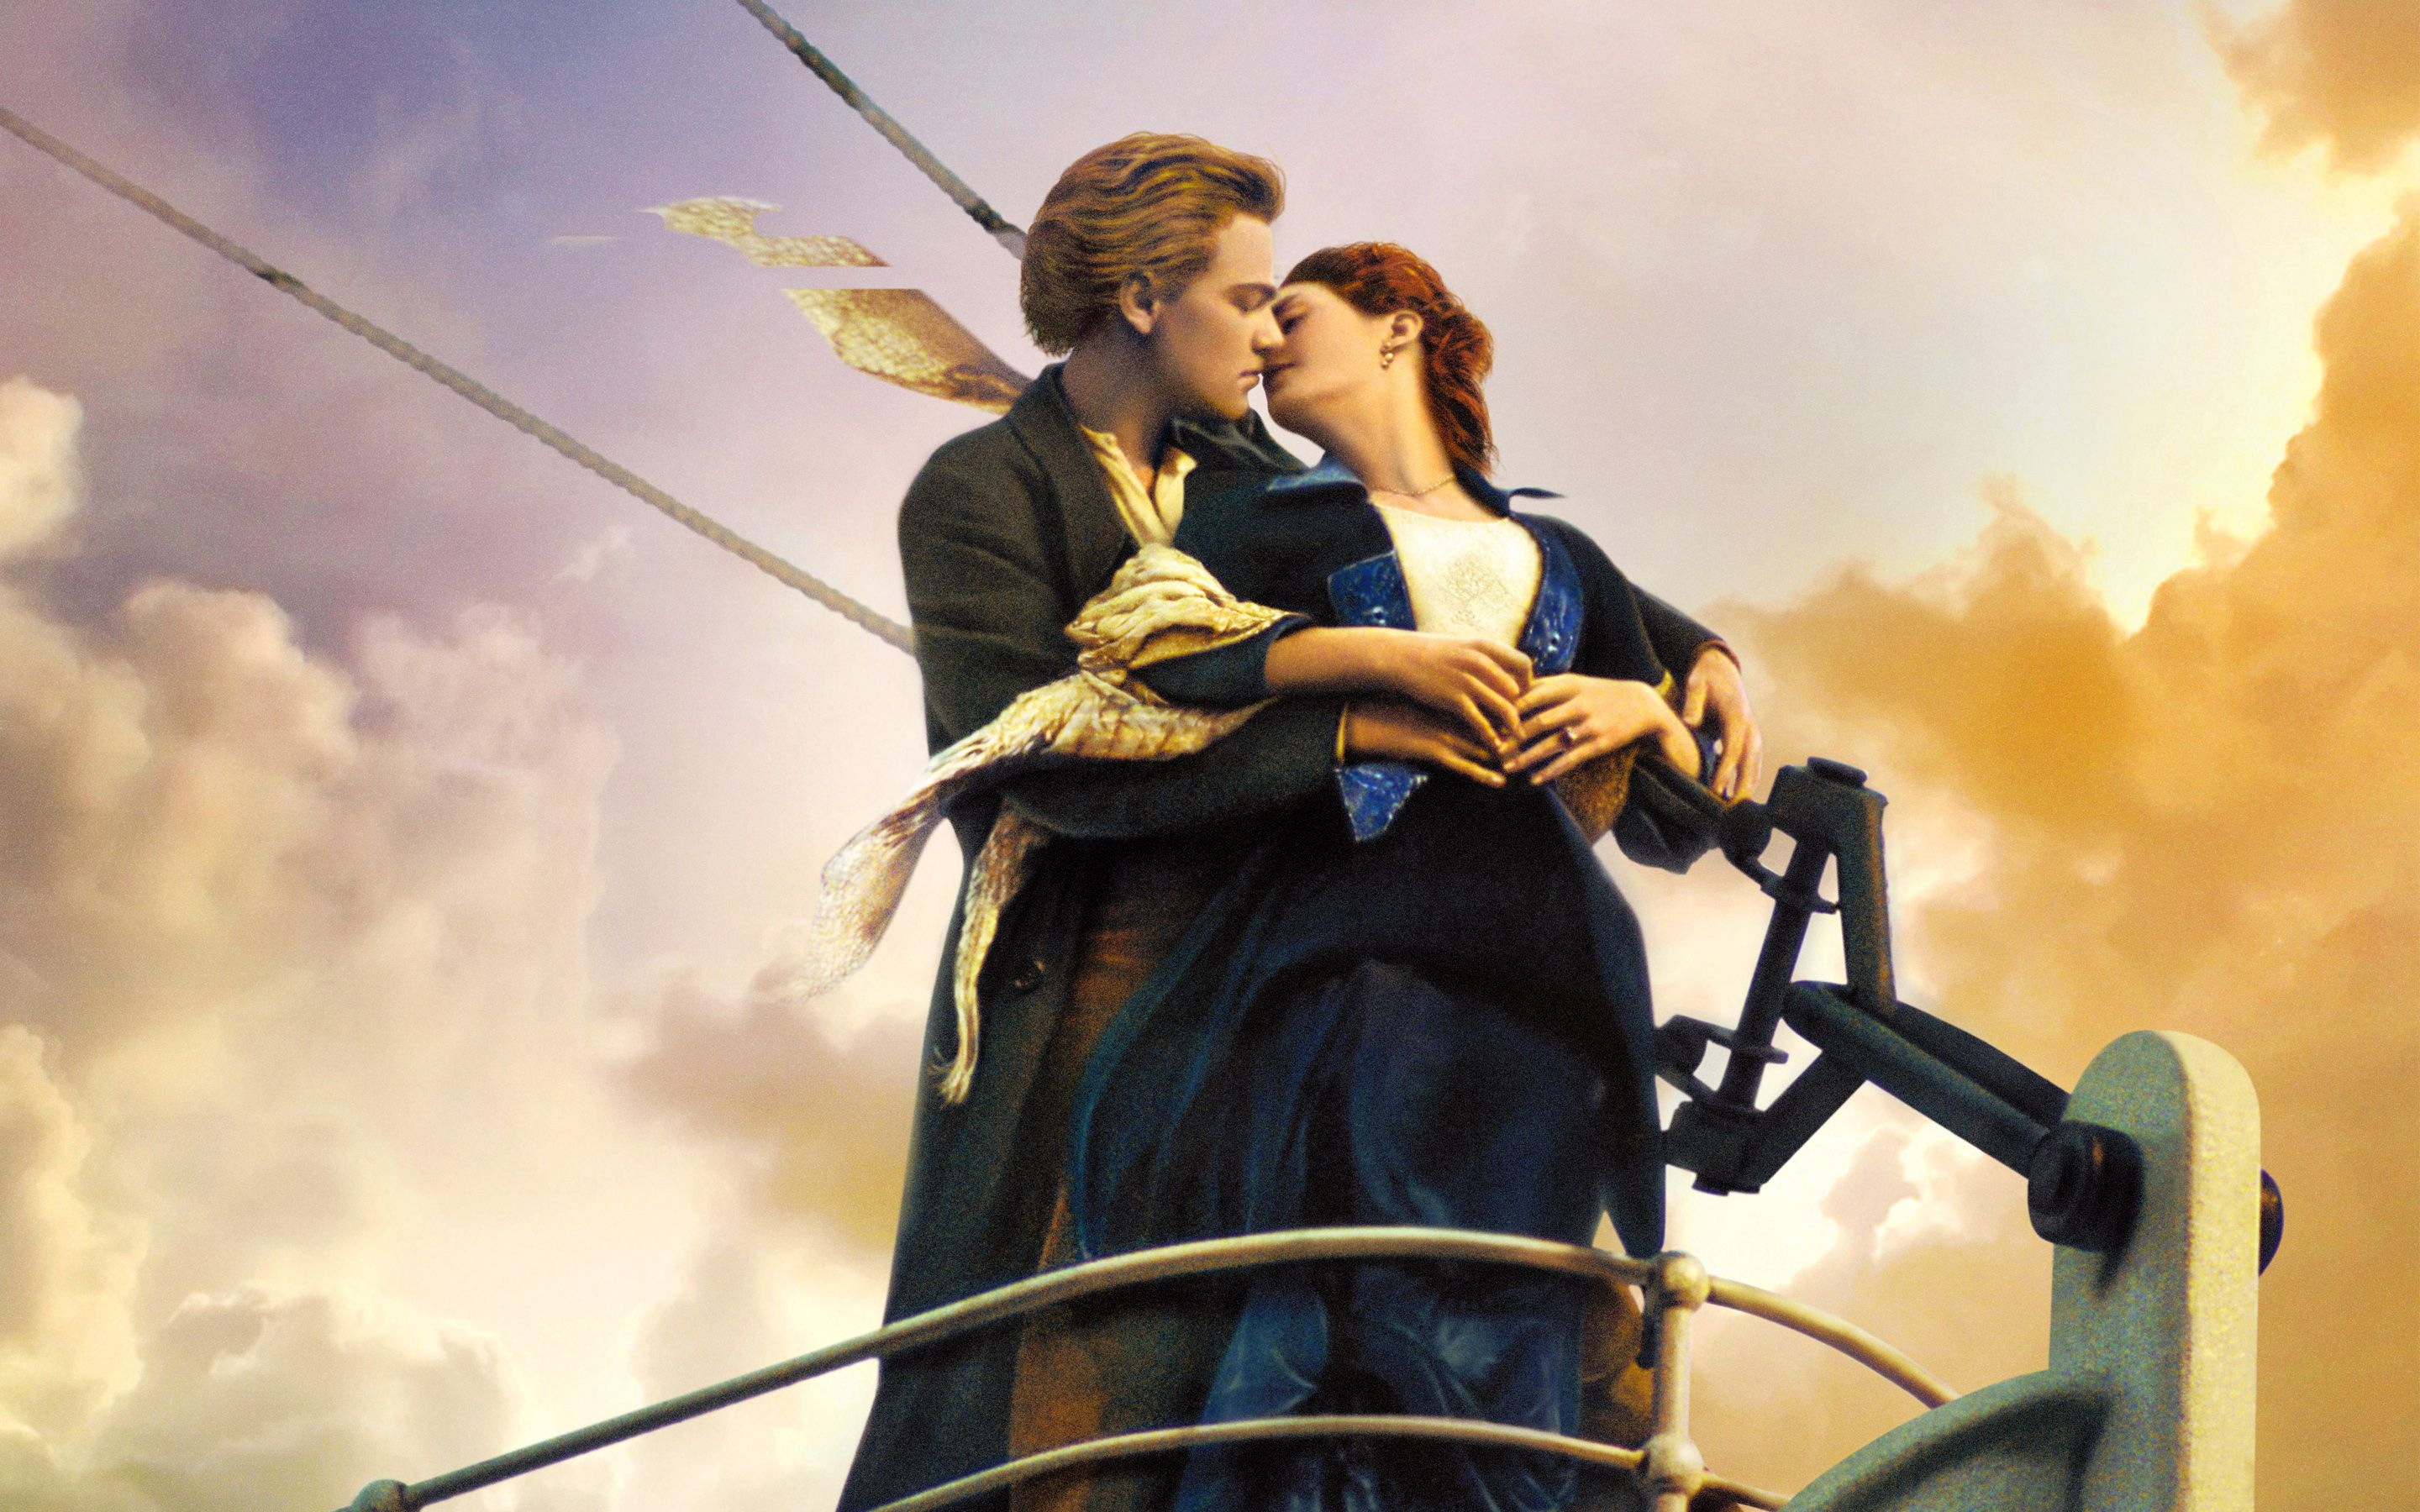 Titanic Ship 3d Wallpaper Free Download Jack And Rose Romantic Hd Wallpapers From Titanic Movie